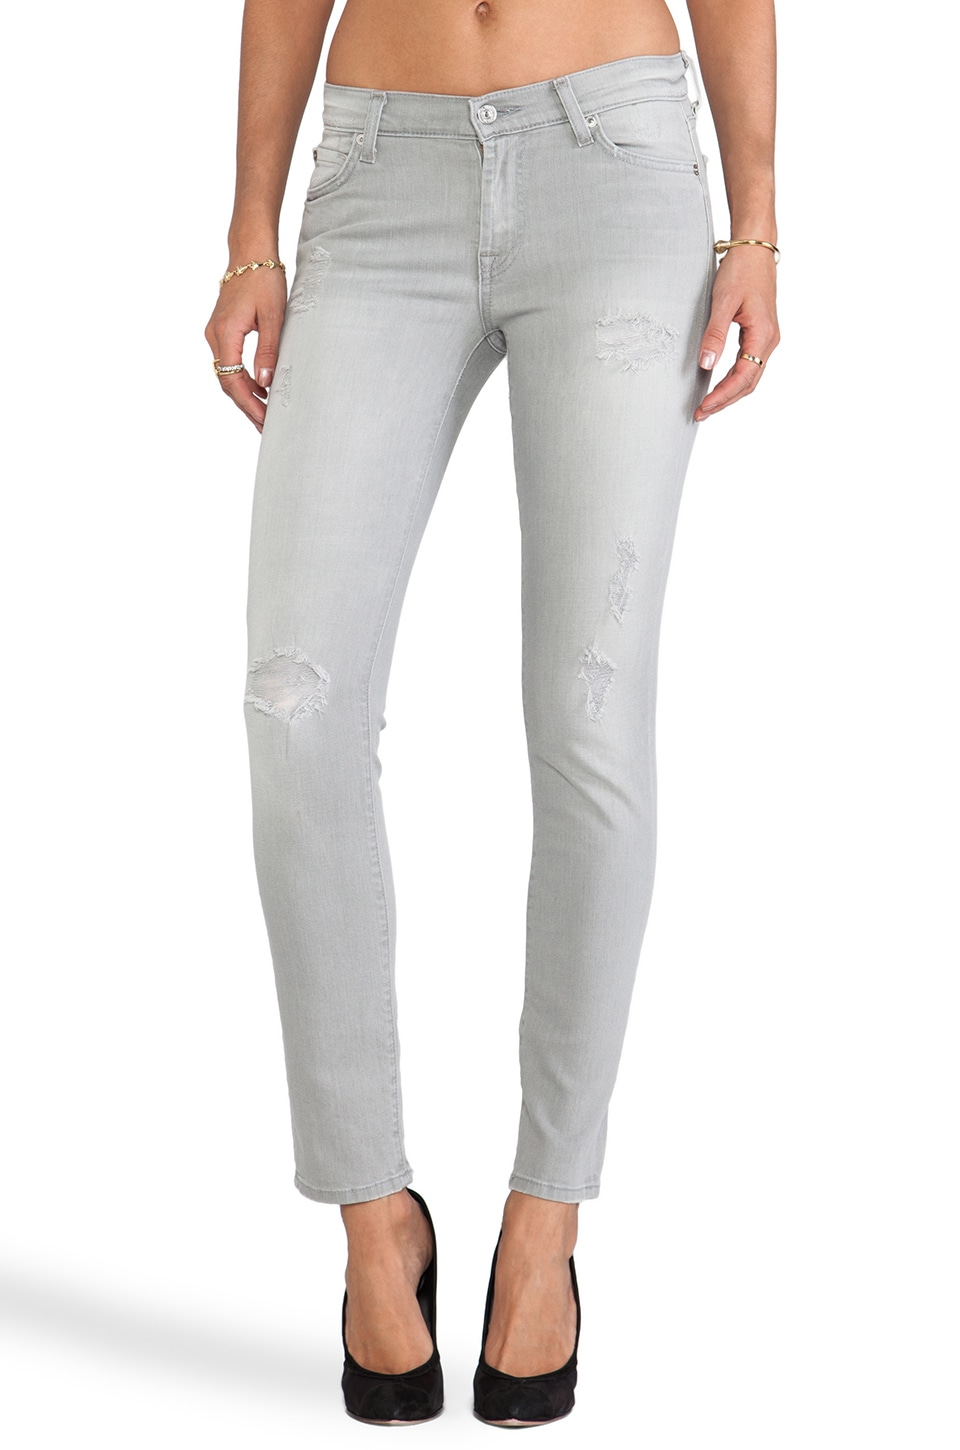 7 For All Mankind The Slim Cigarette in Light Grey Destroy